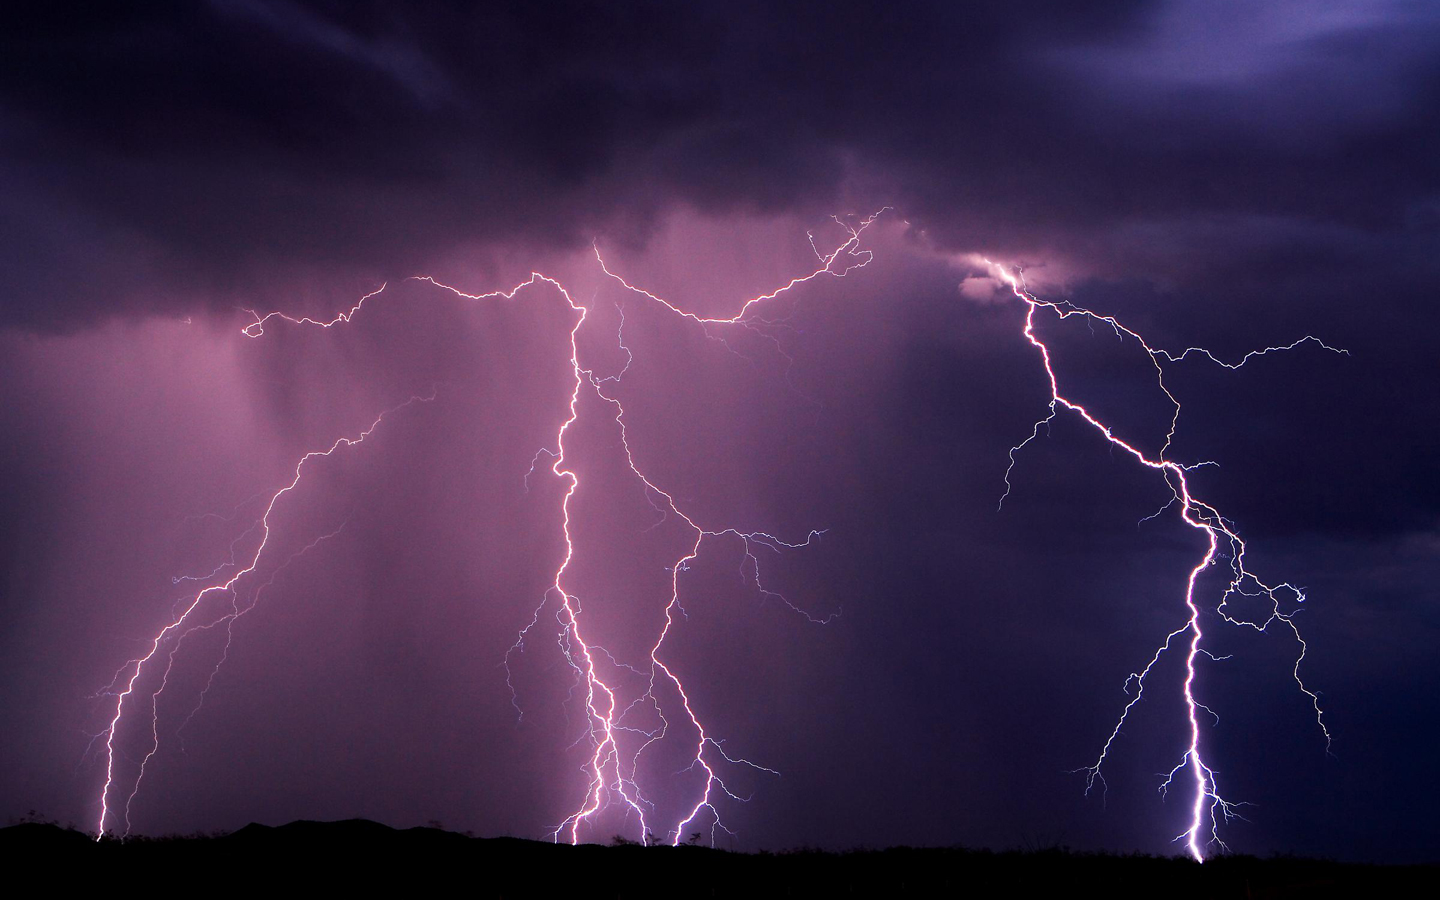 hd lightning wallpapers 1080p With Resolutions 1440900 Pixel 1440x900